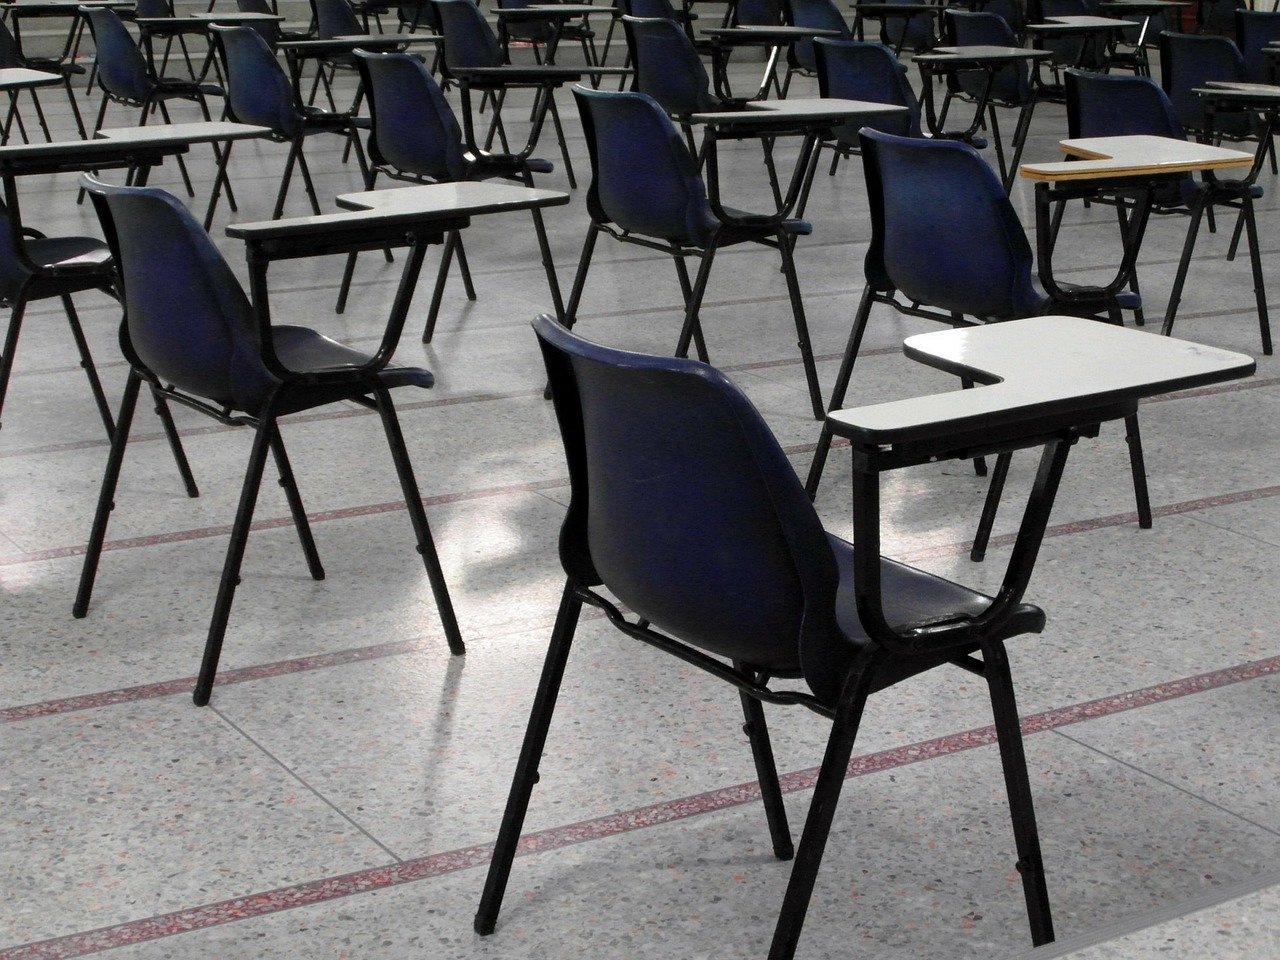 Students stand up for cancellation of exams, demand new ones